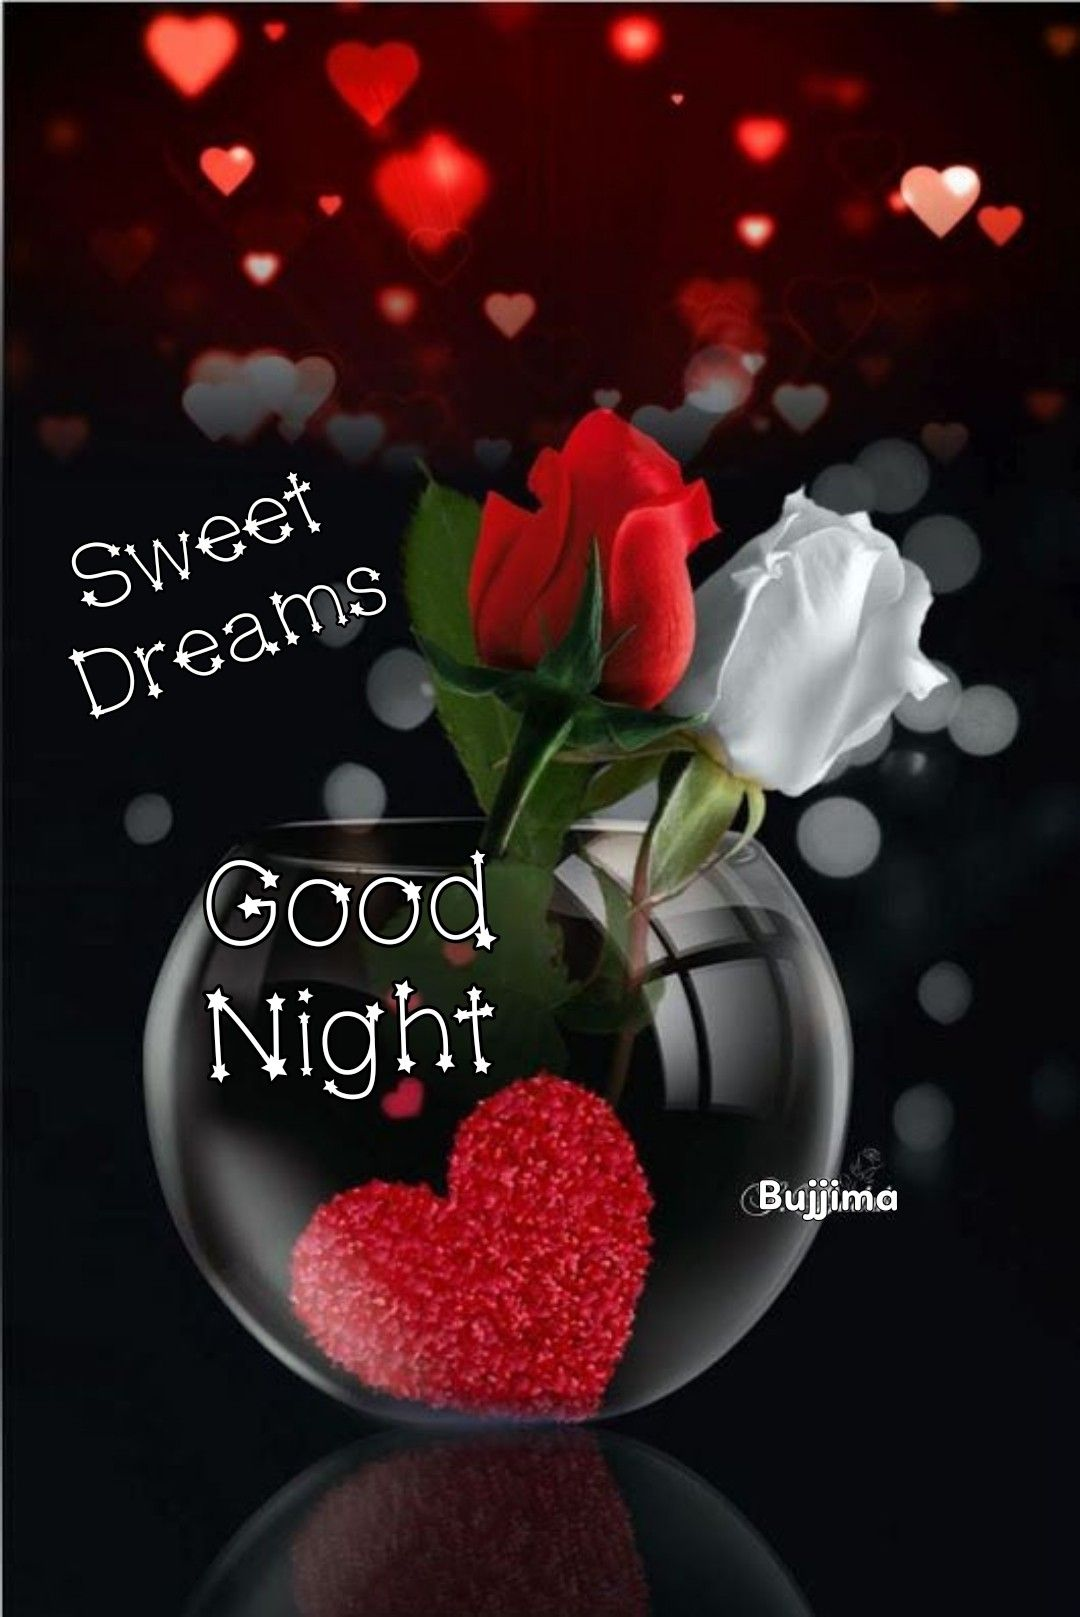 Good Night Sweet Sis Good Night Sweet Dreams Good Night Flowers Good Night Image